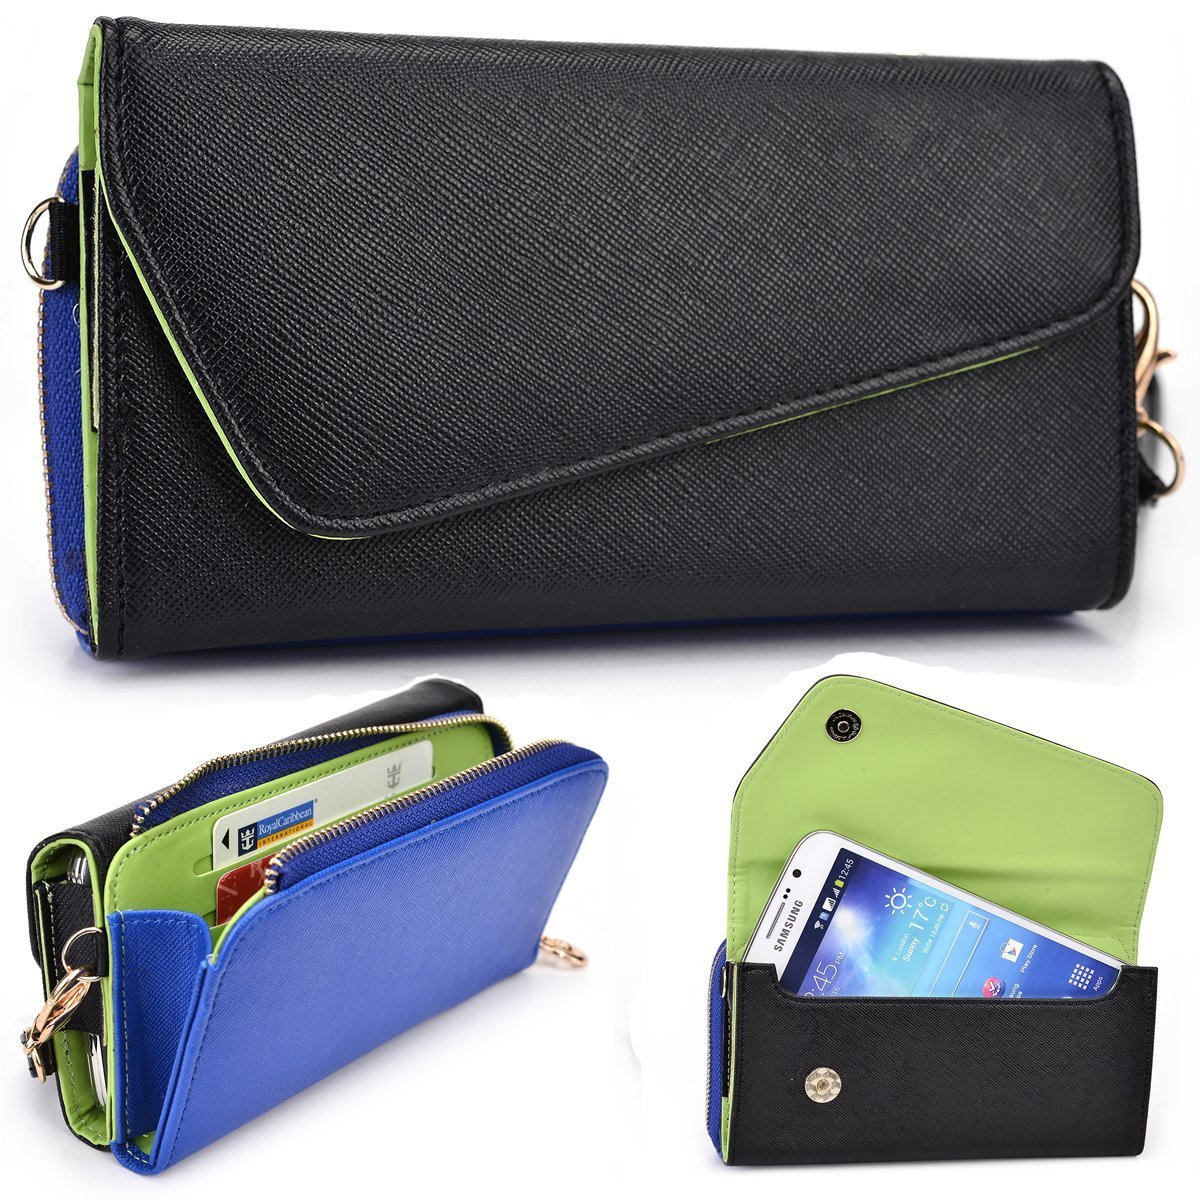 Black and Royal Blue Crossbody Case for LG G4 Pro, Flex, G Pro 2 D830 D838 F350K F350L F350S Smartphone Phablet